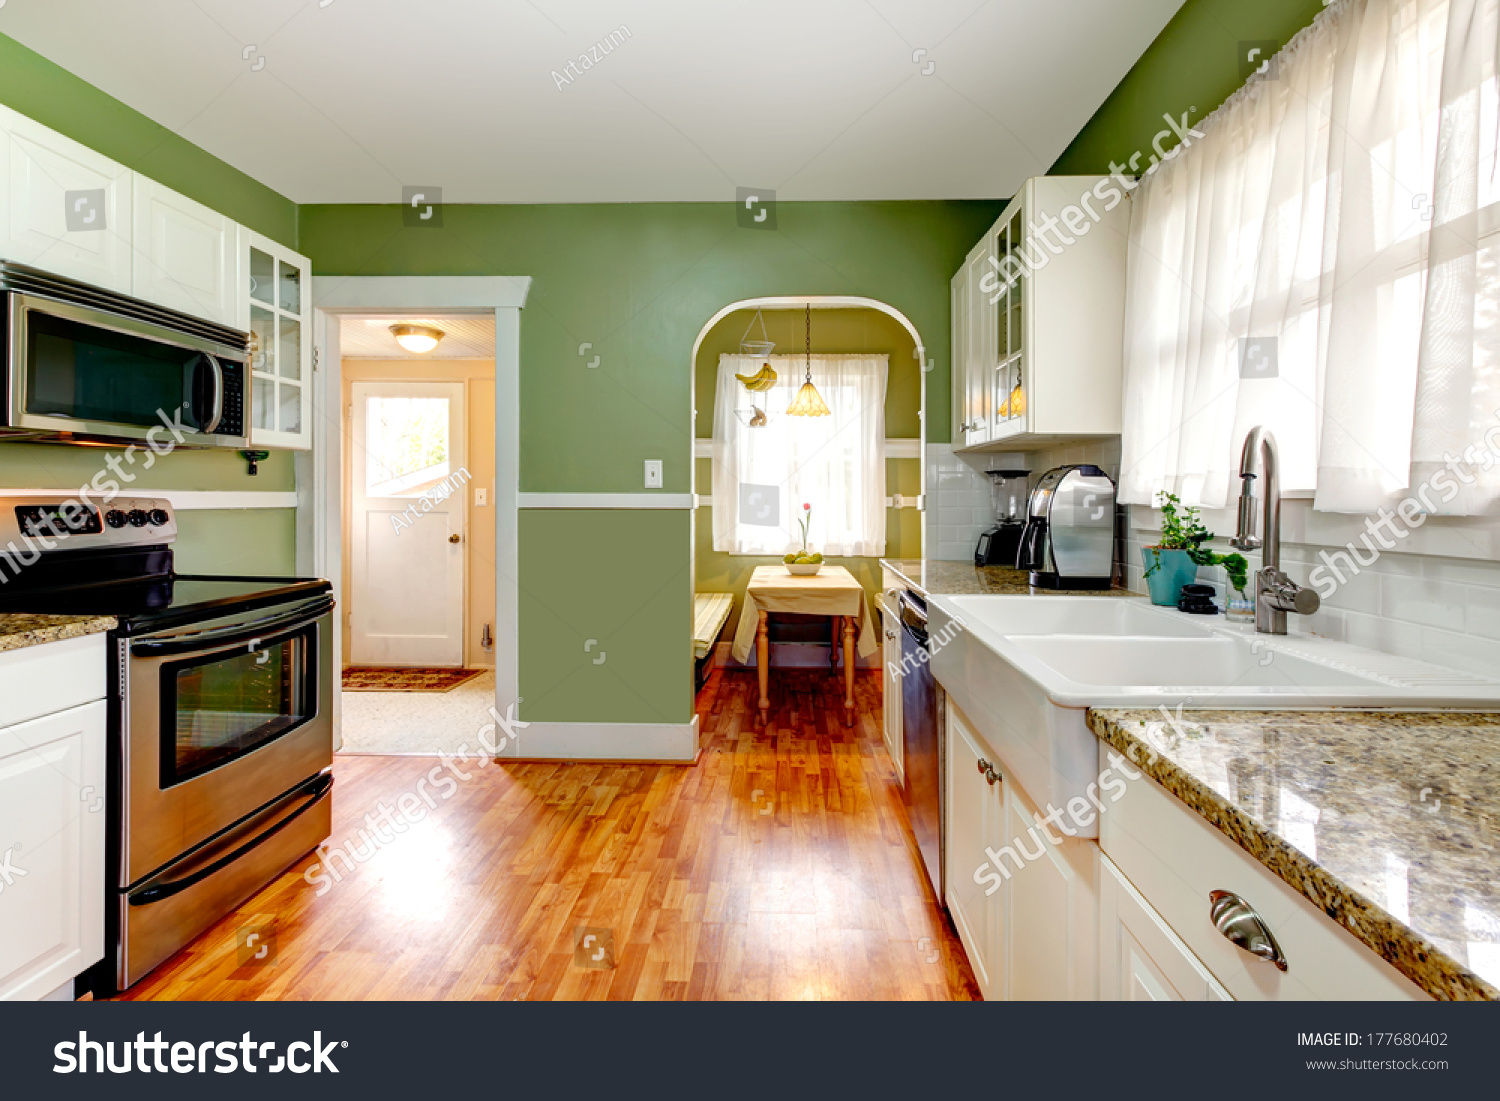 Bright Kitchen Bright Kitchen Room Green Wall Hardwood Stock Photo 177680402